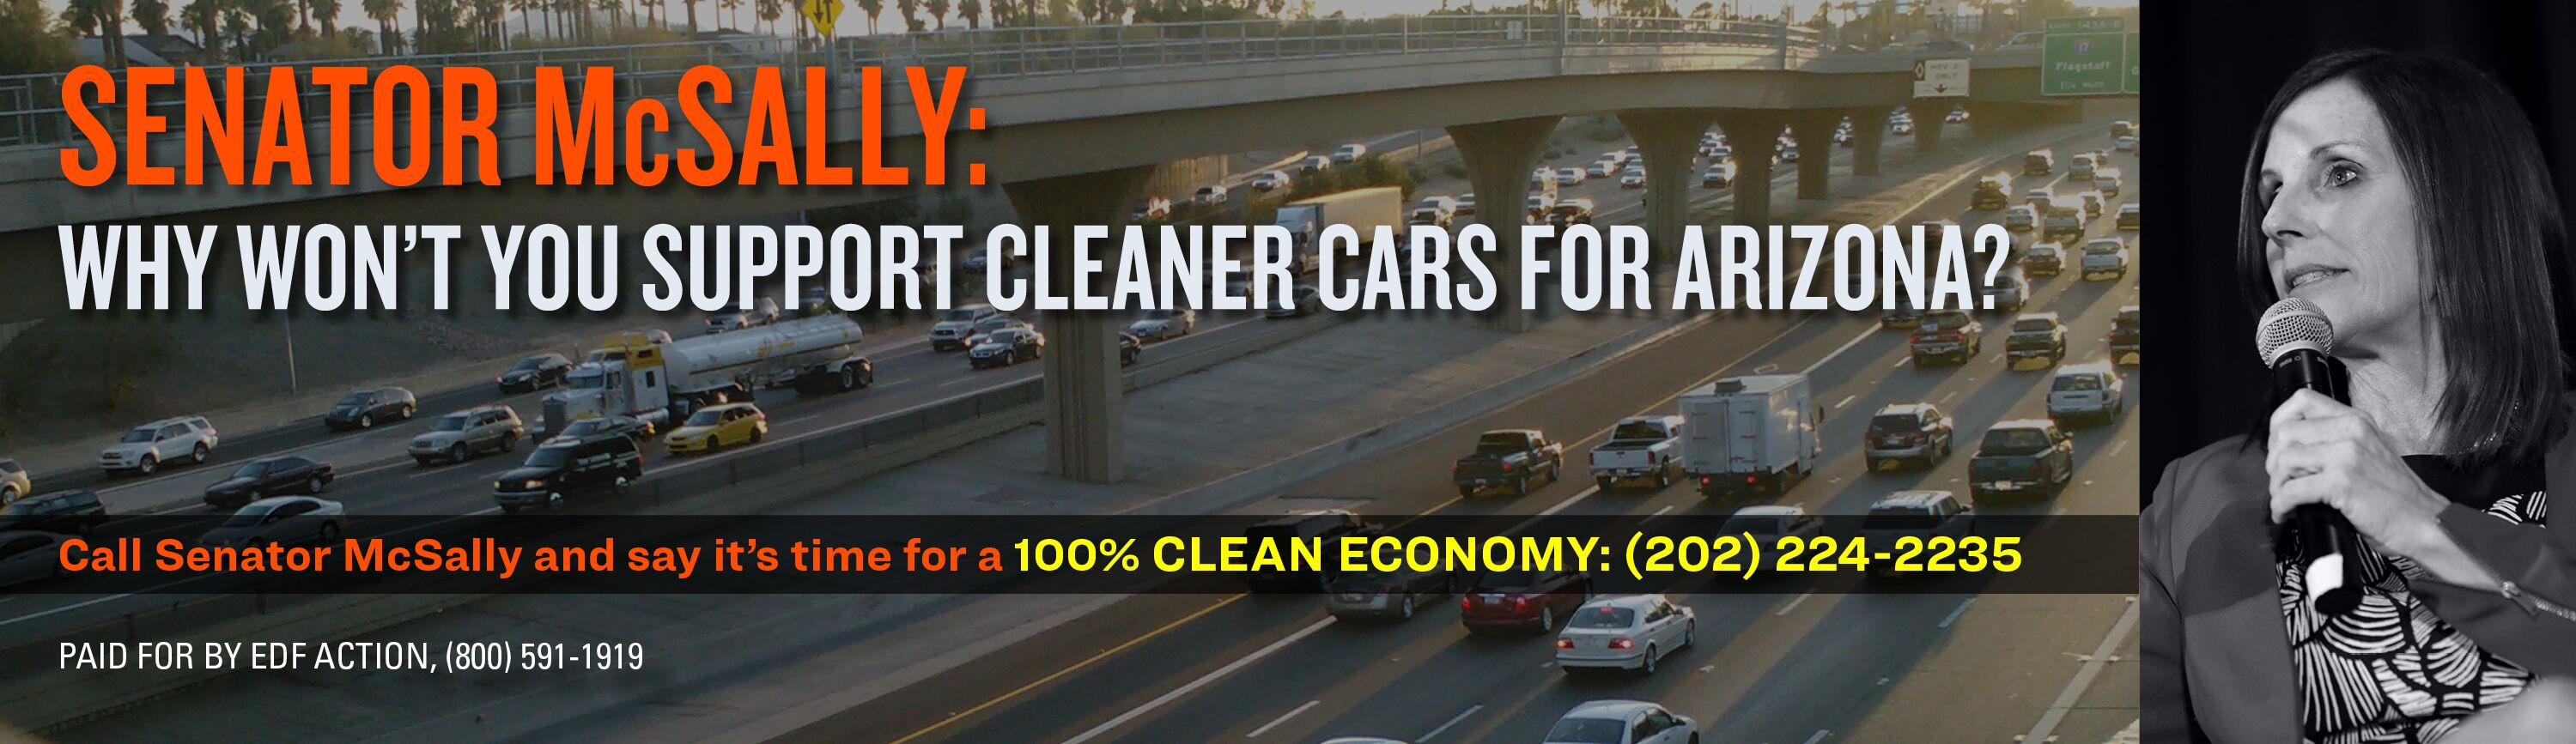 Senator McSally, why won't you support clean cars.